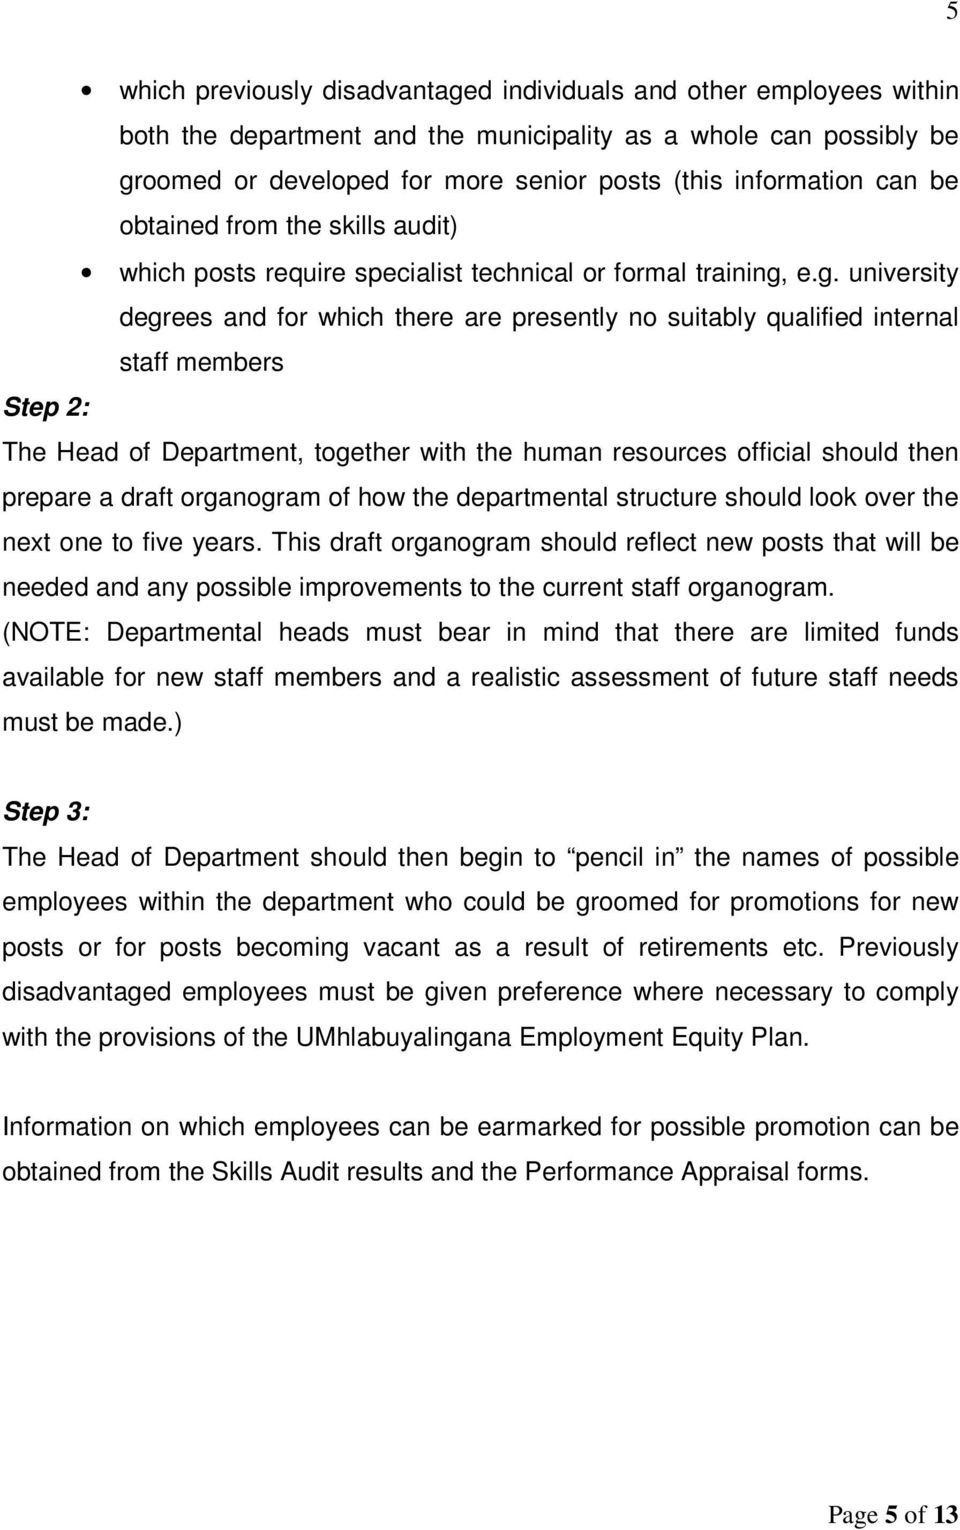 e.g. university degrees and for which there are presently no suitably qualified internal staff members Step 2: The Head of Department, together with the human resources official should then prepare a